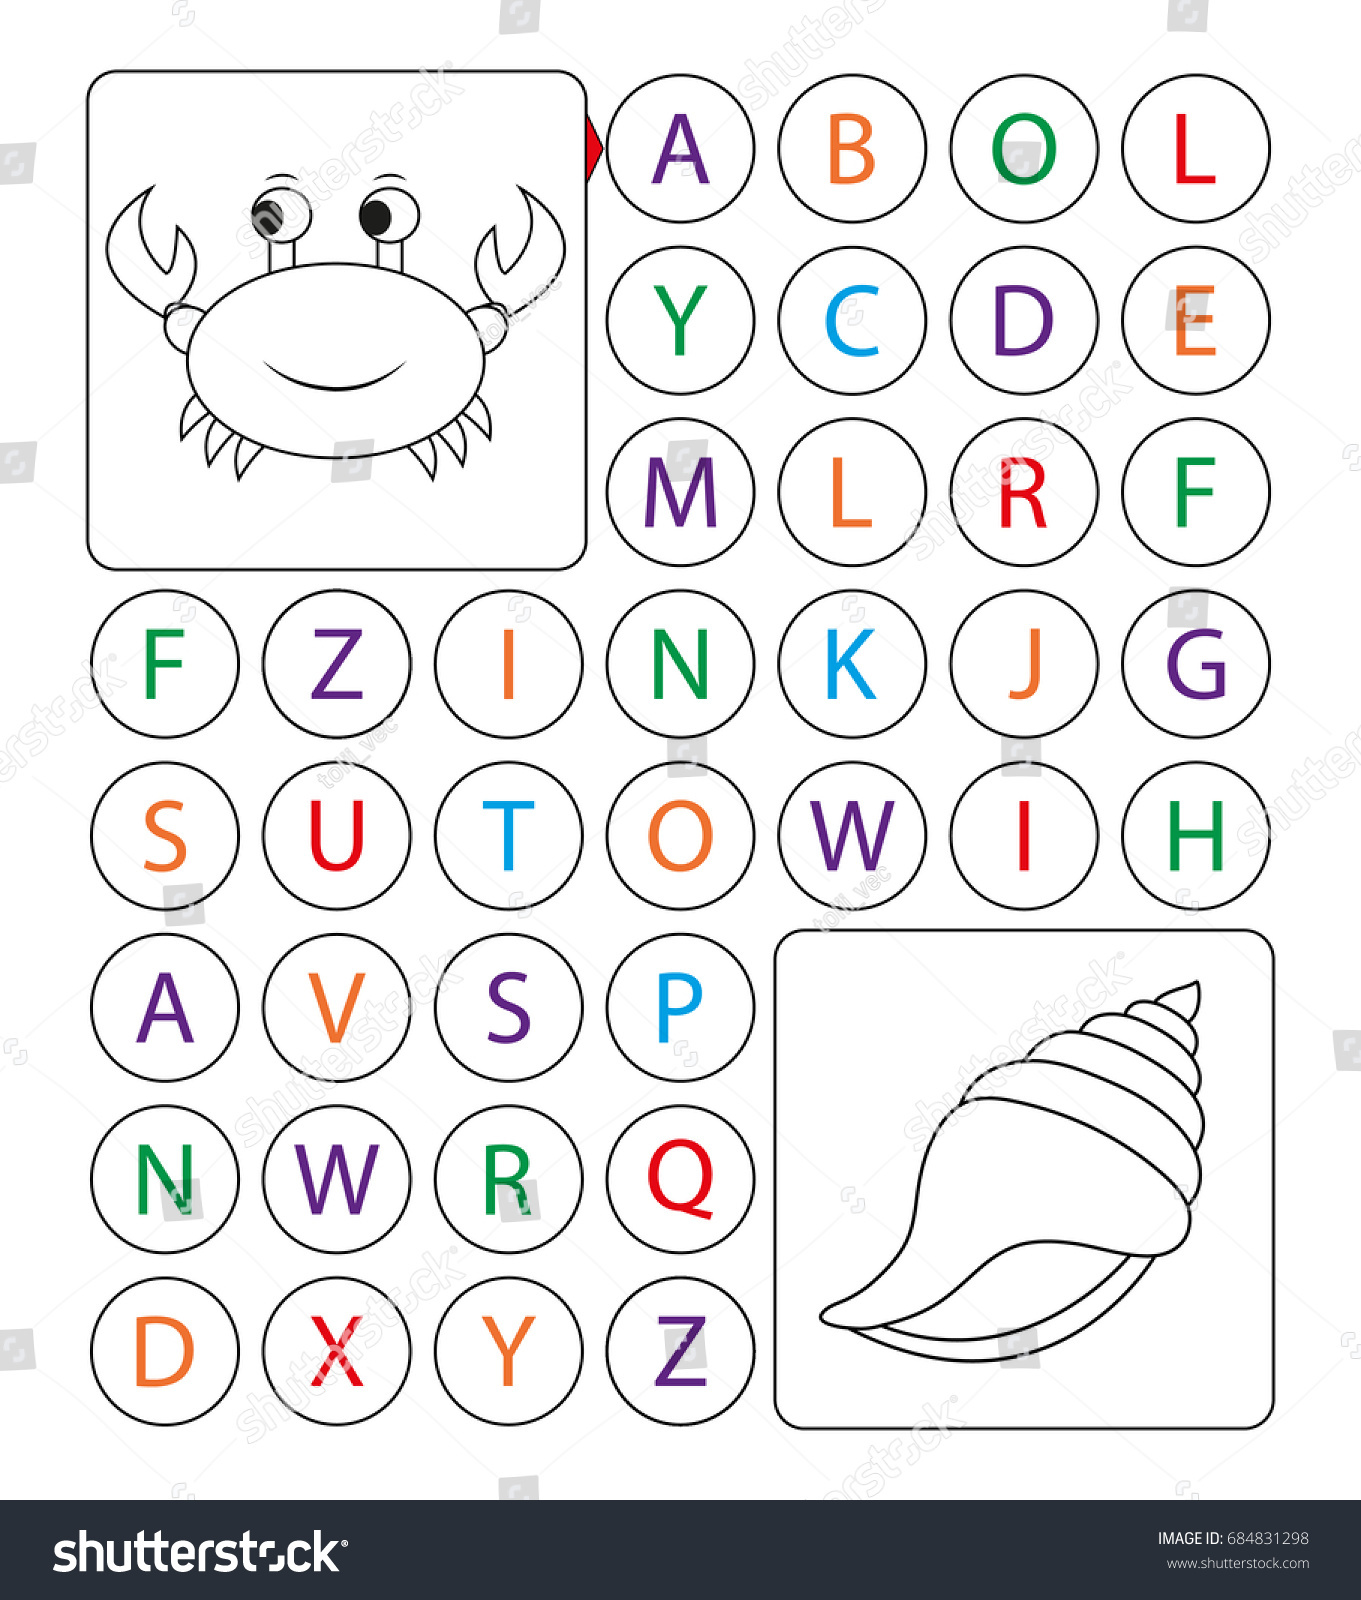 Alphabetic Labyrinth Puzzle Worksheet Learning Letters Stock Vector